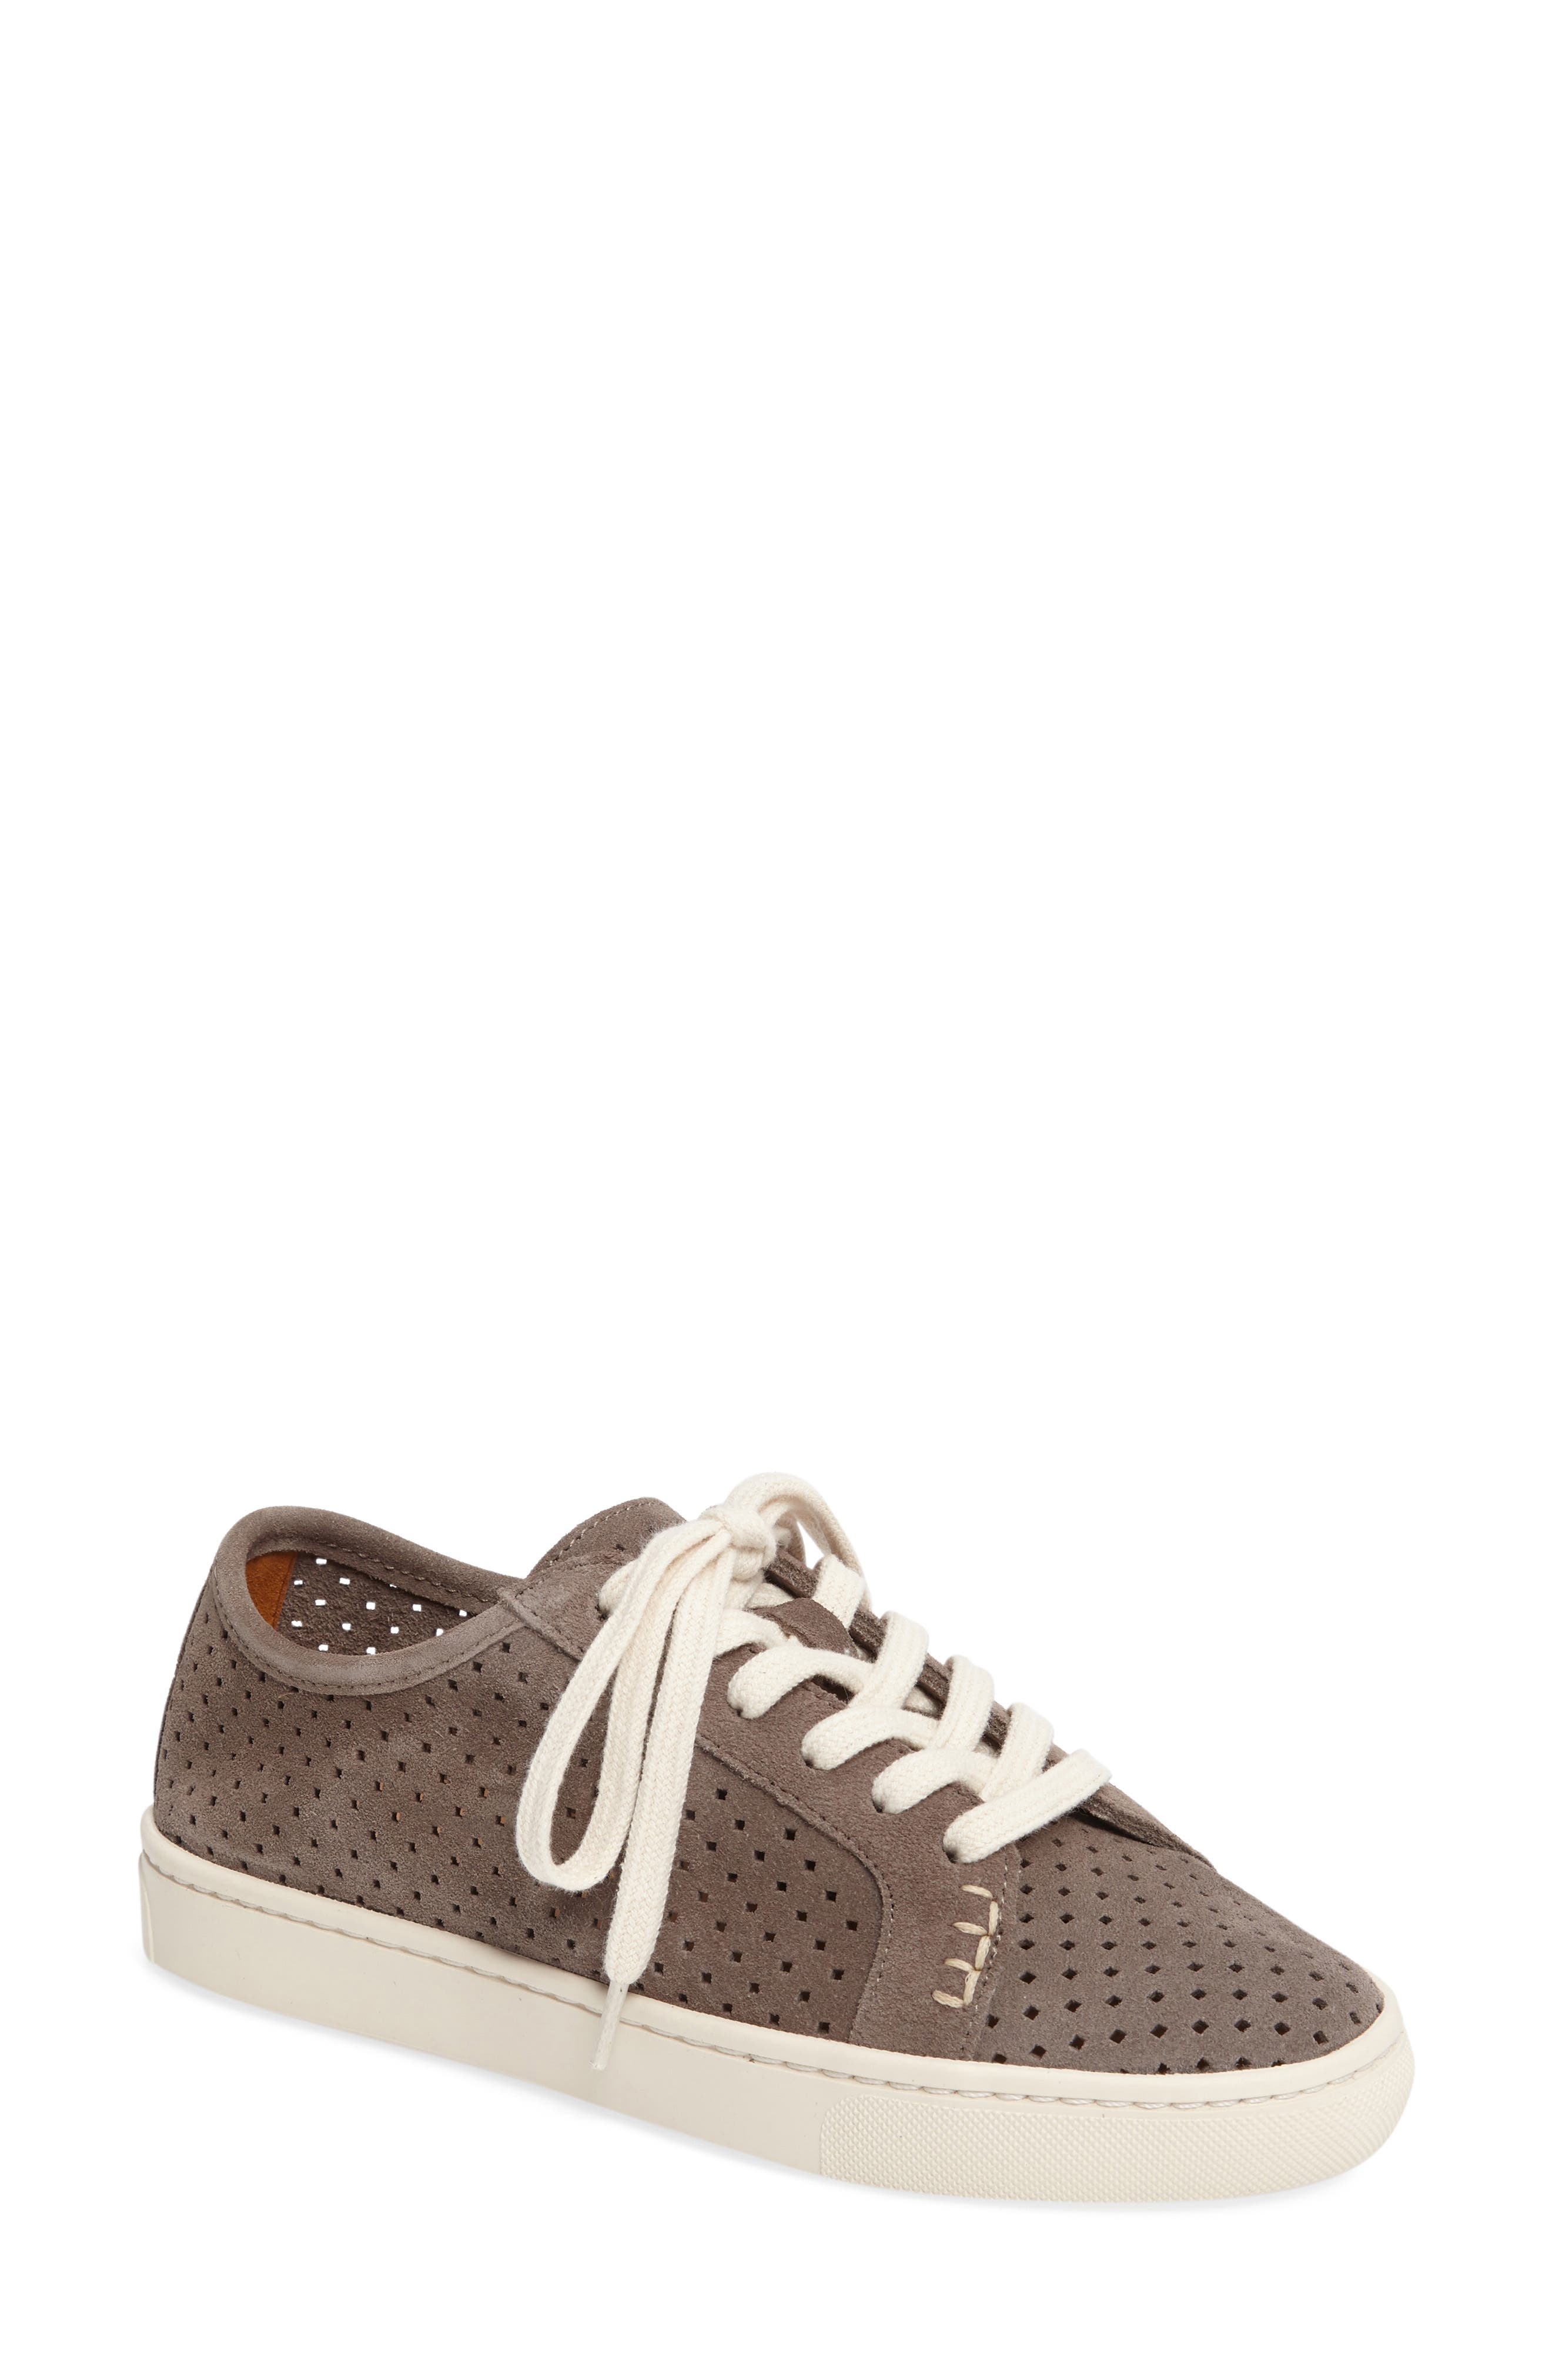 Soludos Perforated Sneaker (Women)